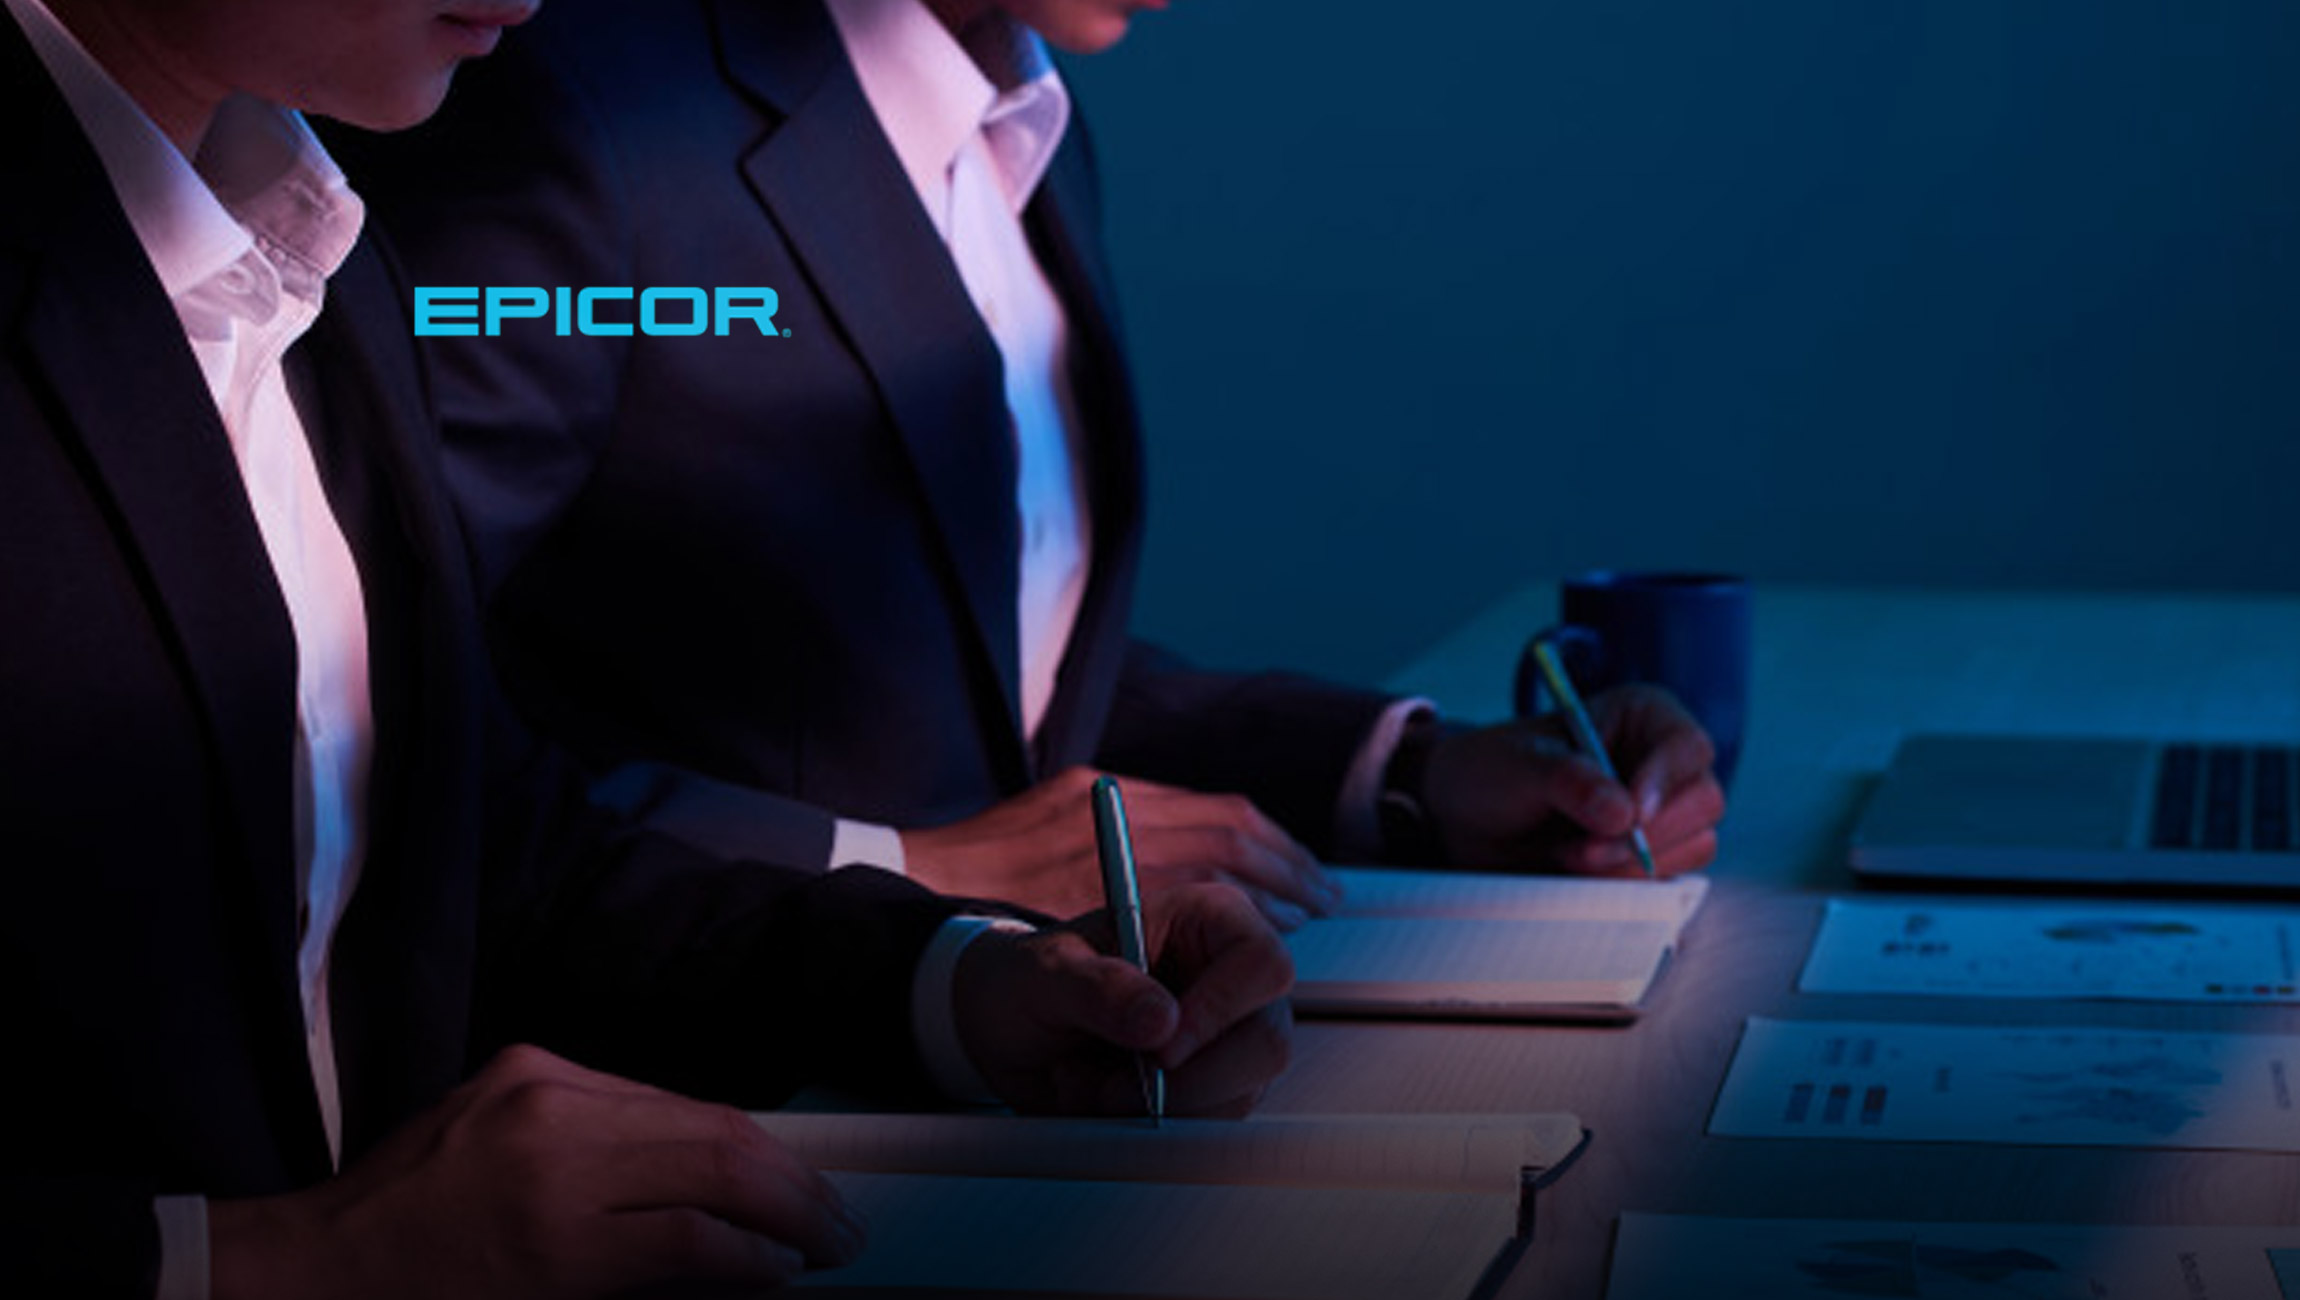 Epicor Global Growth Index Reveals Businesses are Investing in Tech to Offset the Impacts of COVID-19